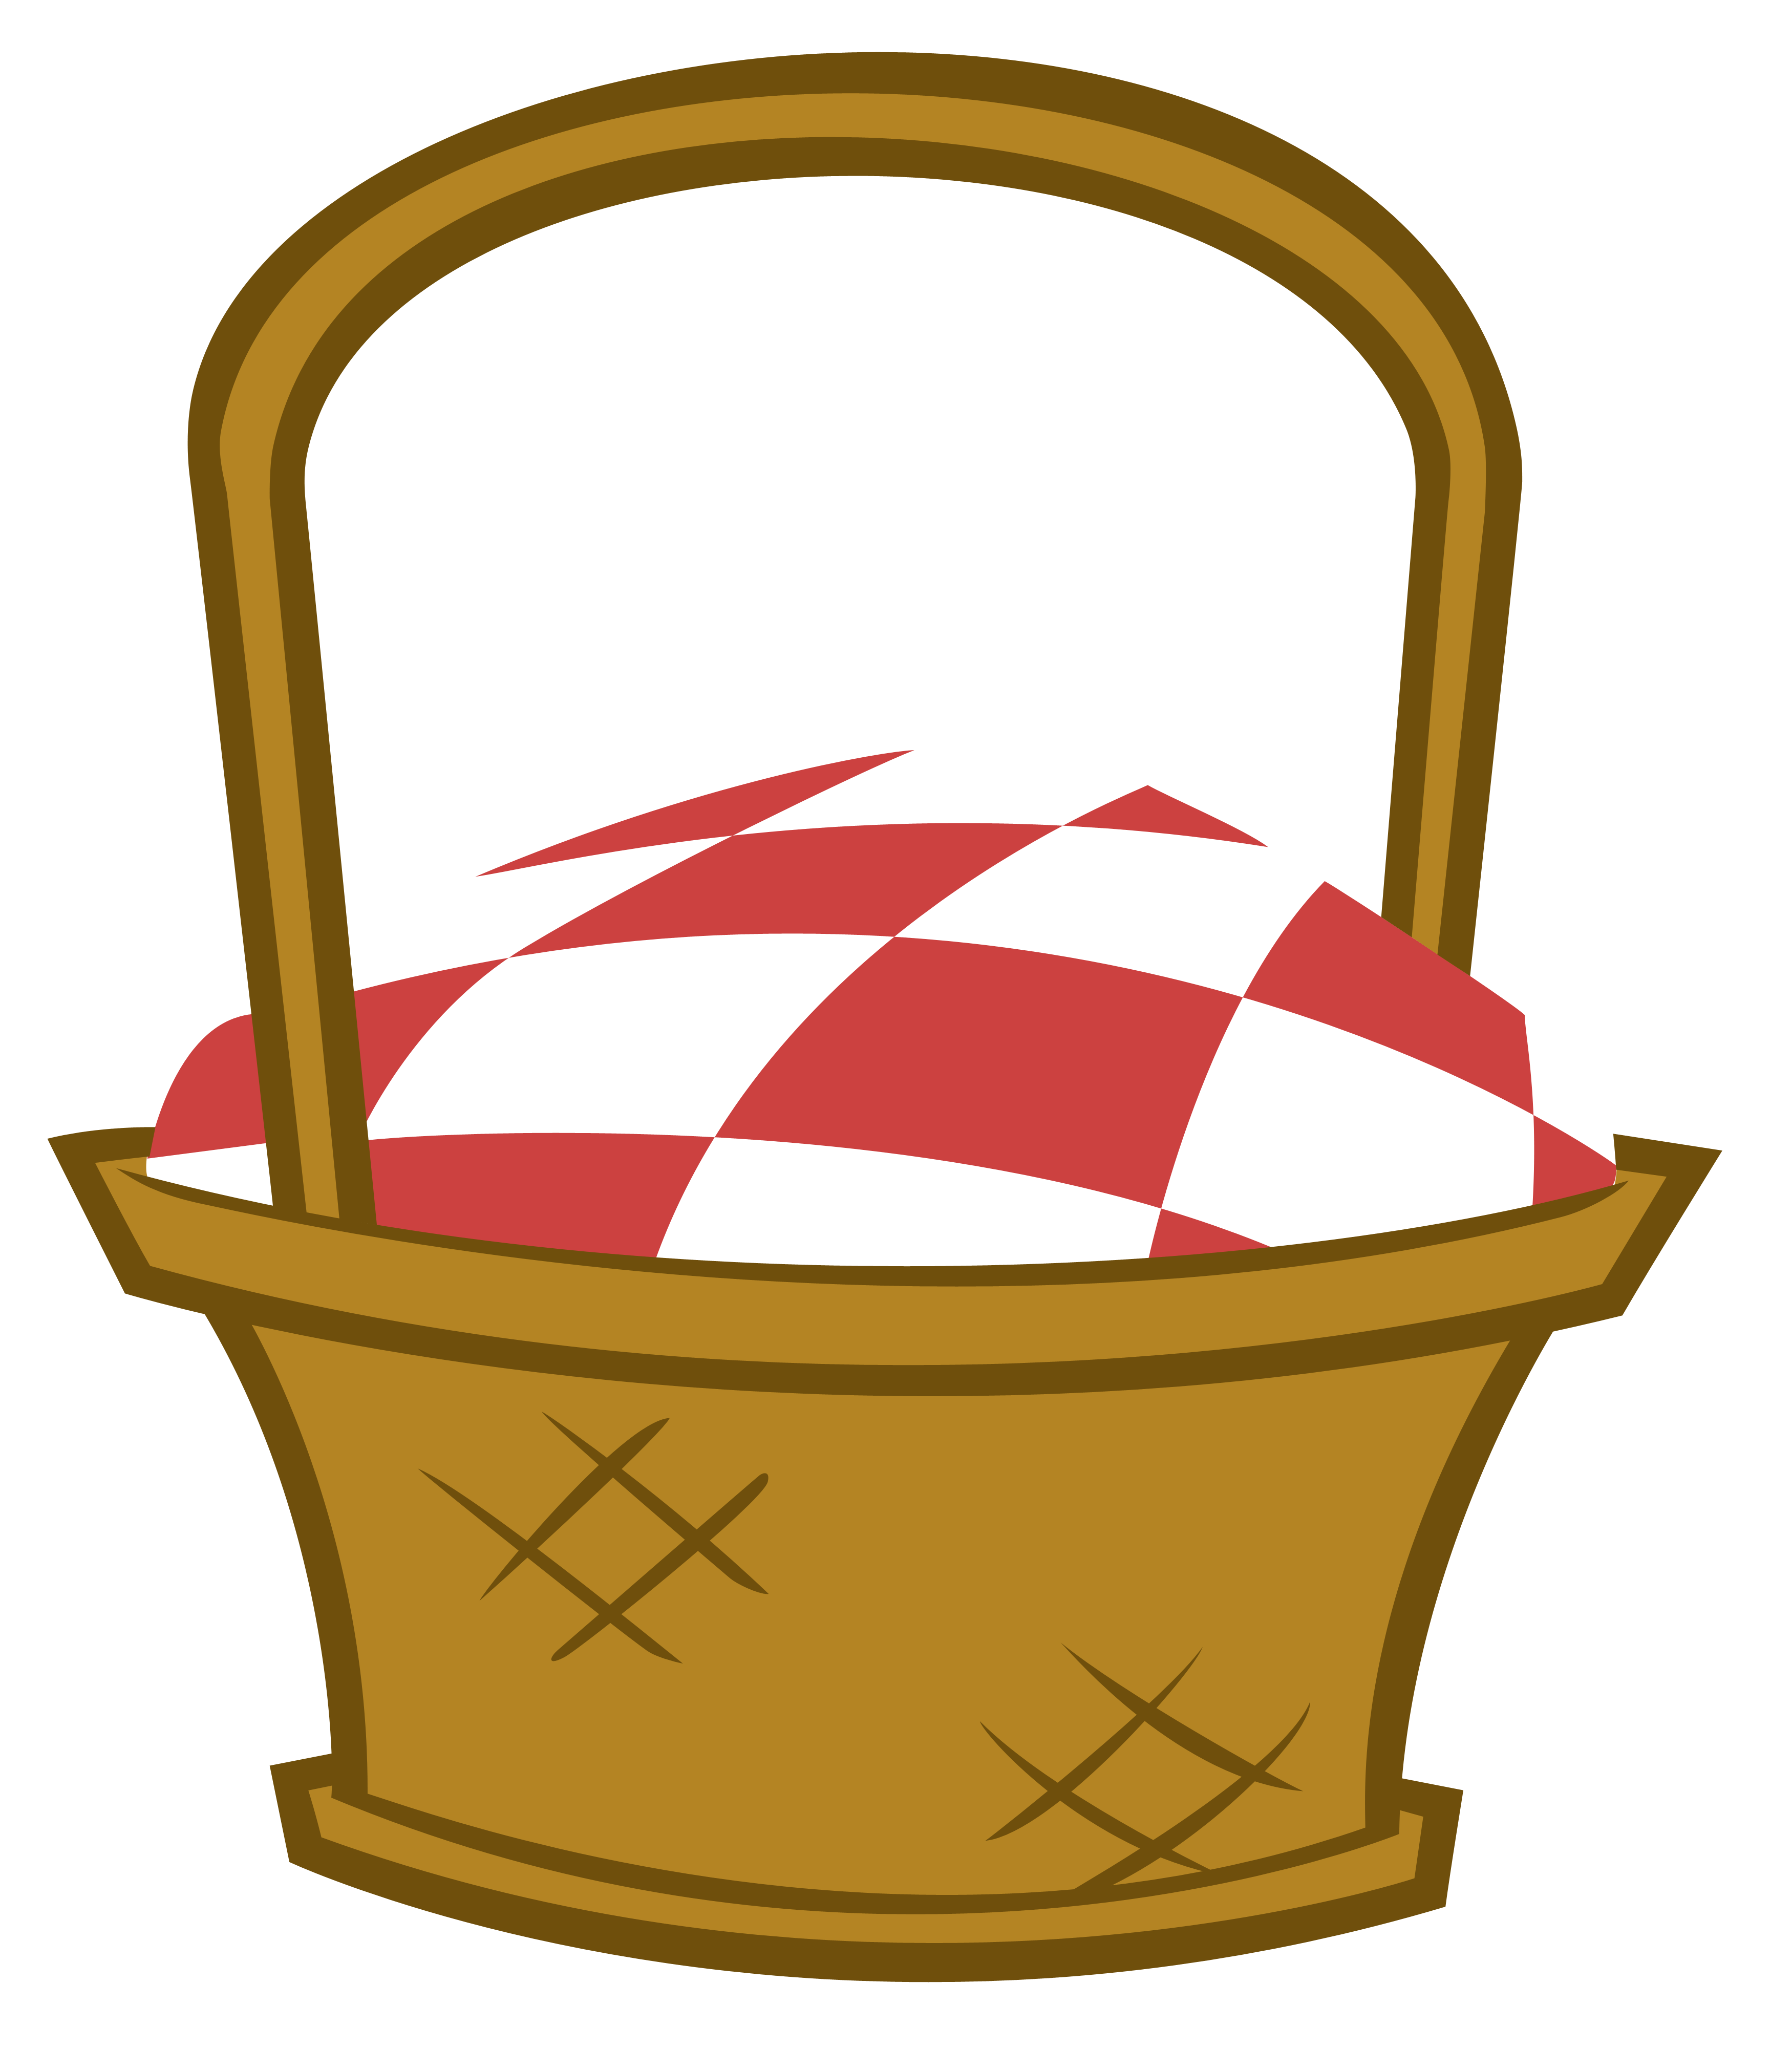 png freeuse library Checkered clipart picnic blanket. Panda free images info.